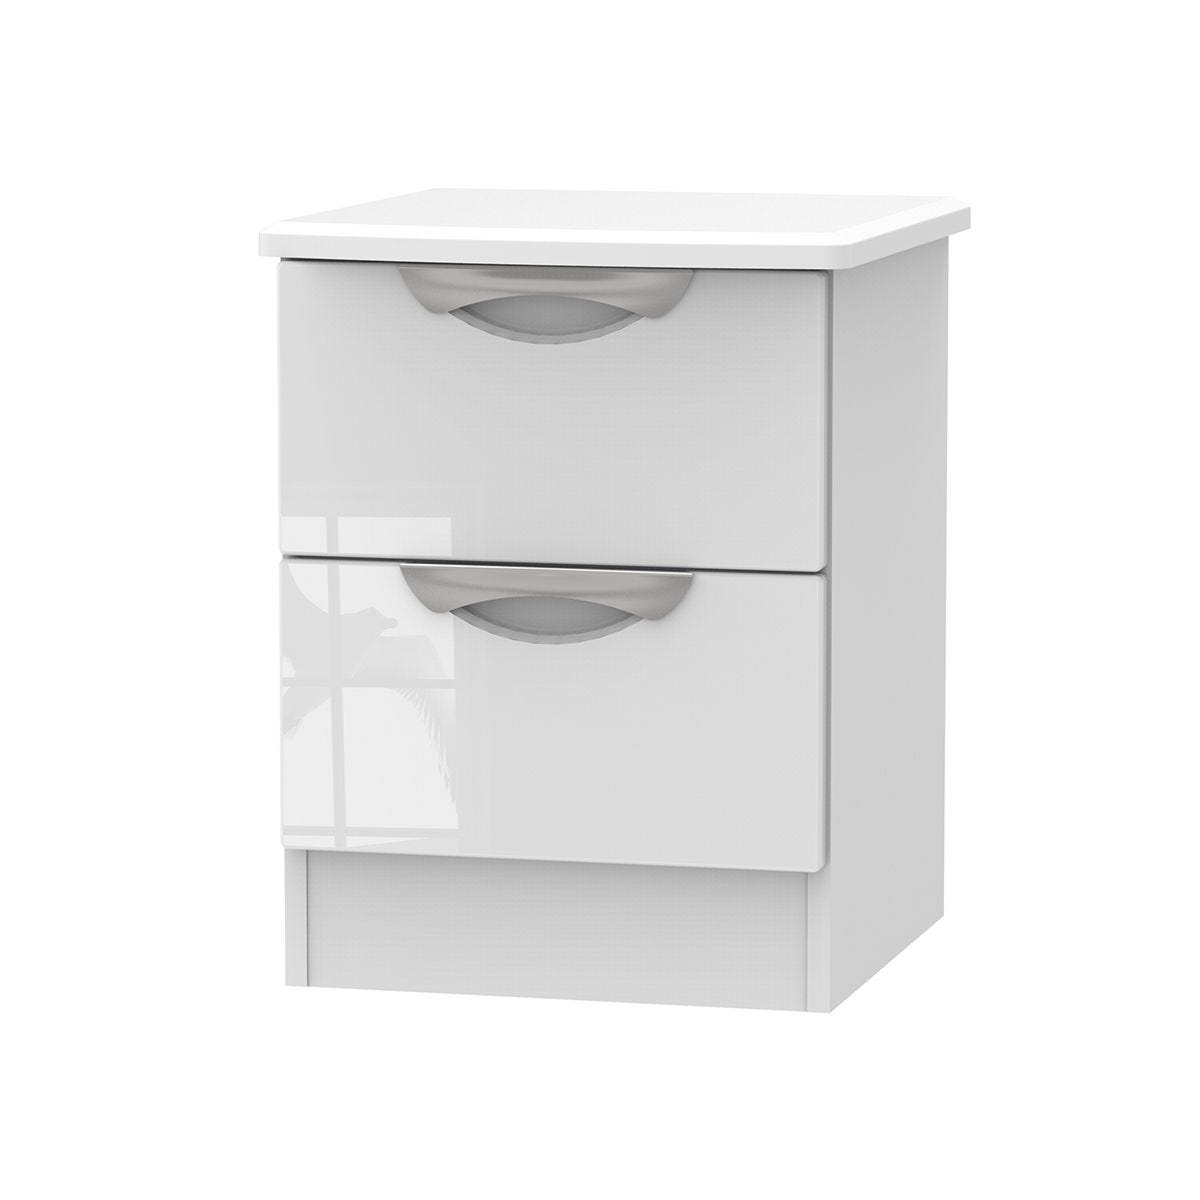 Indices 2-Drawer Bedside Cabinet - White